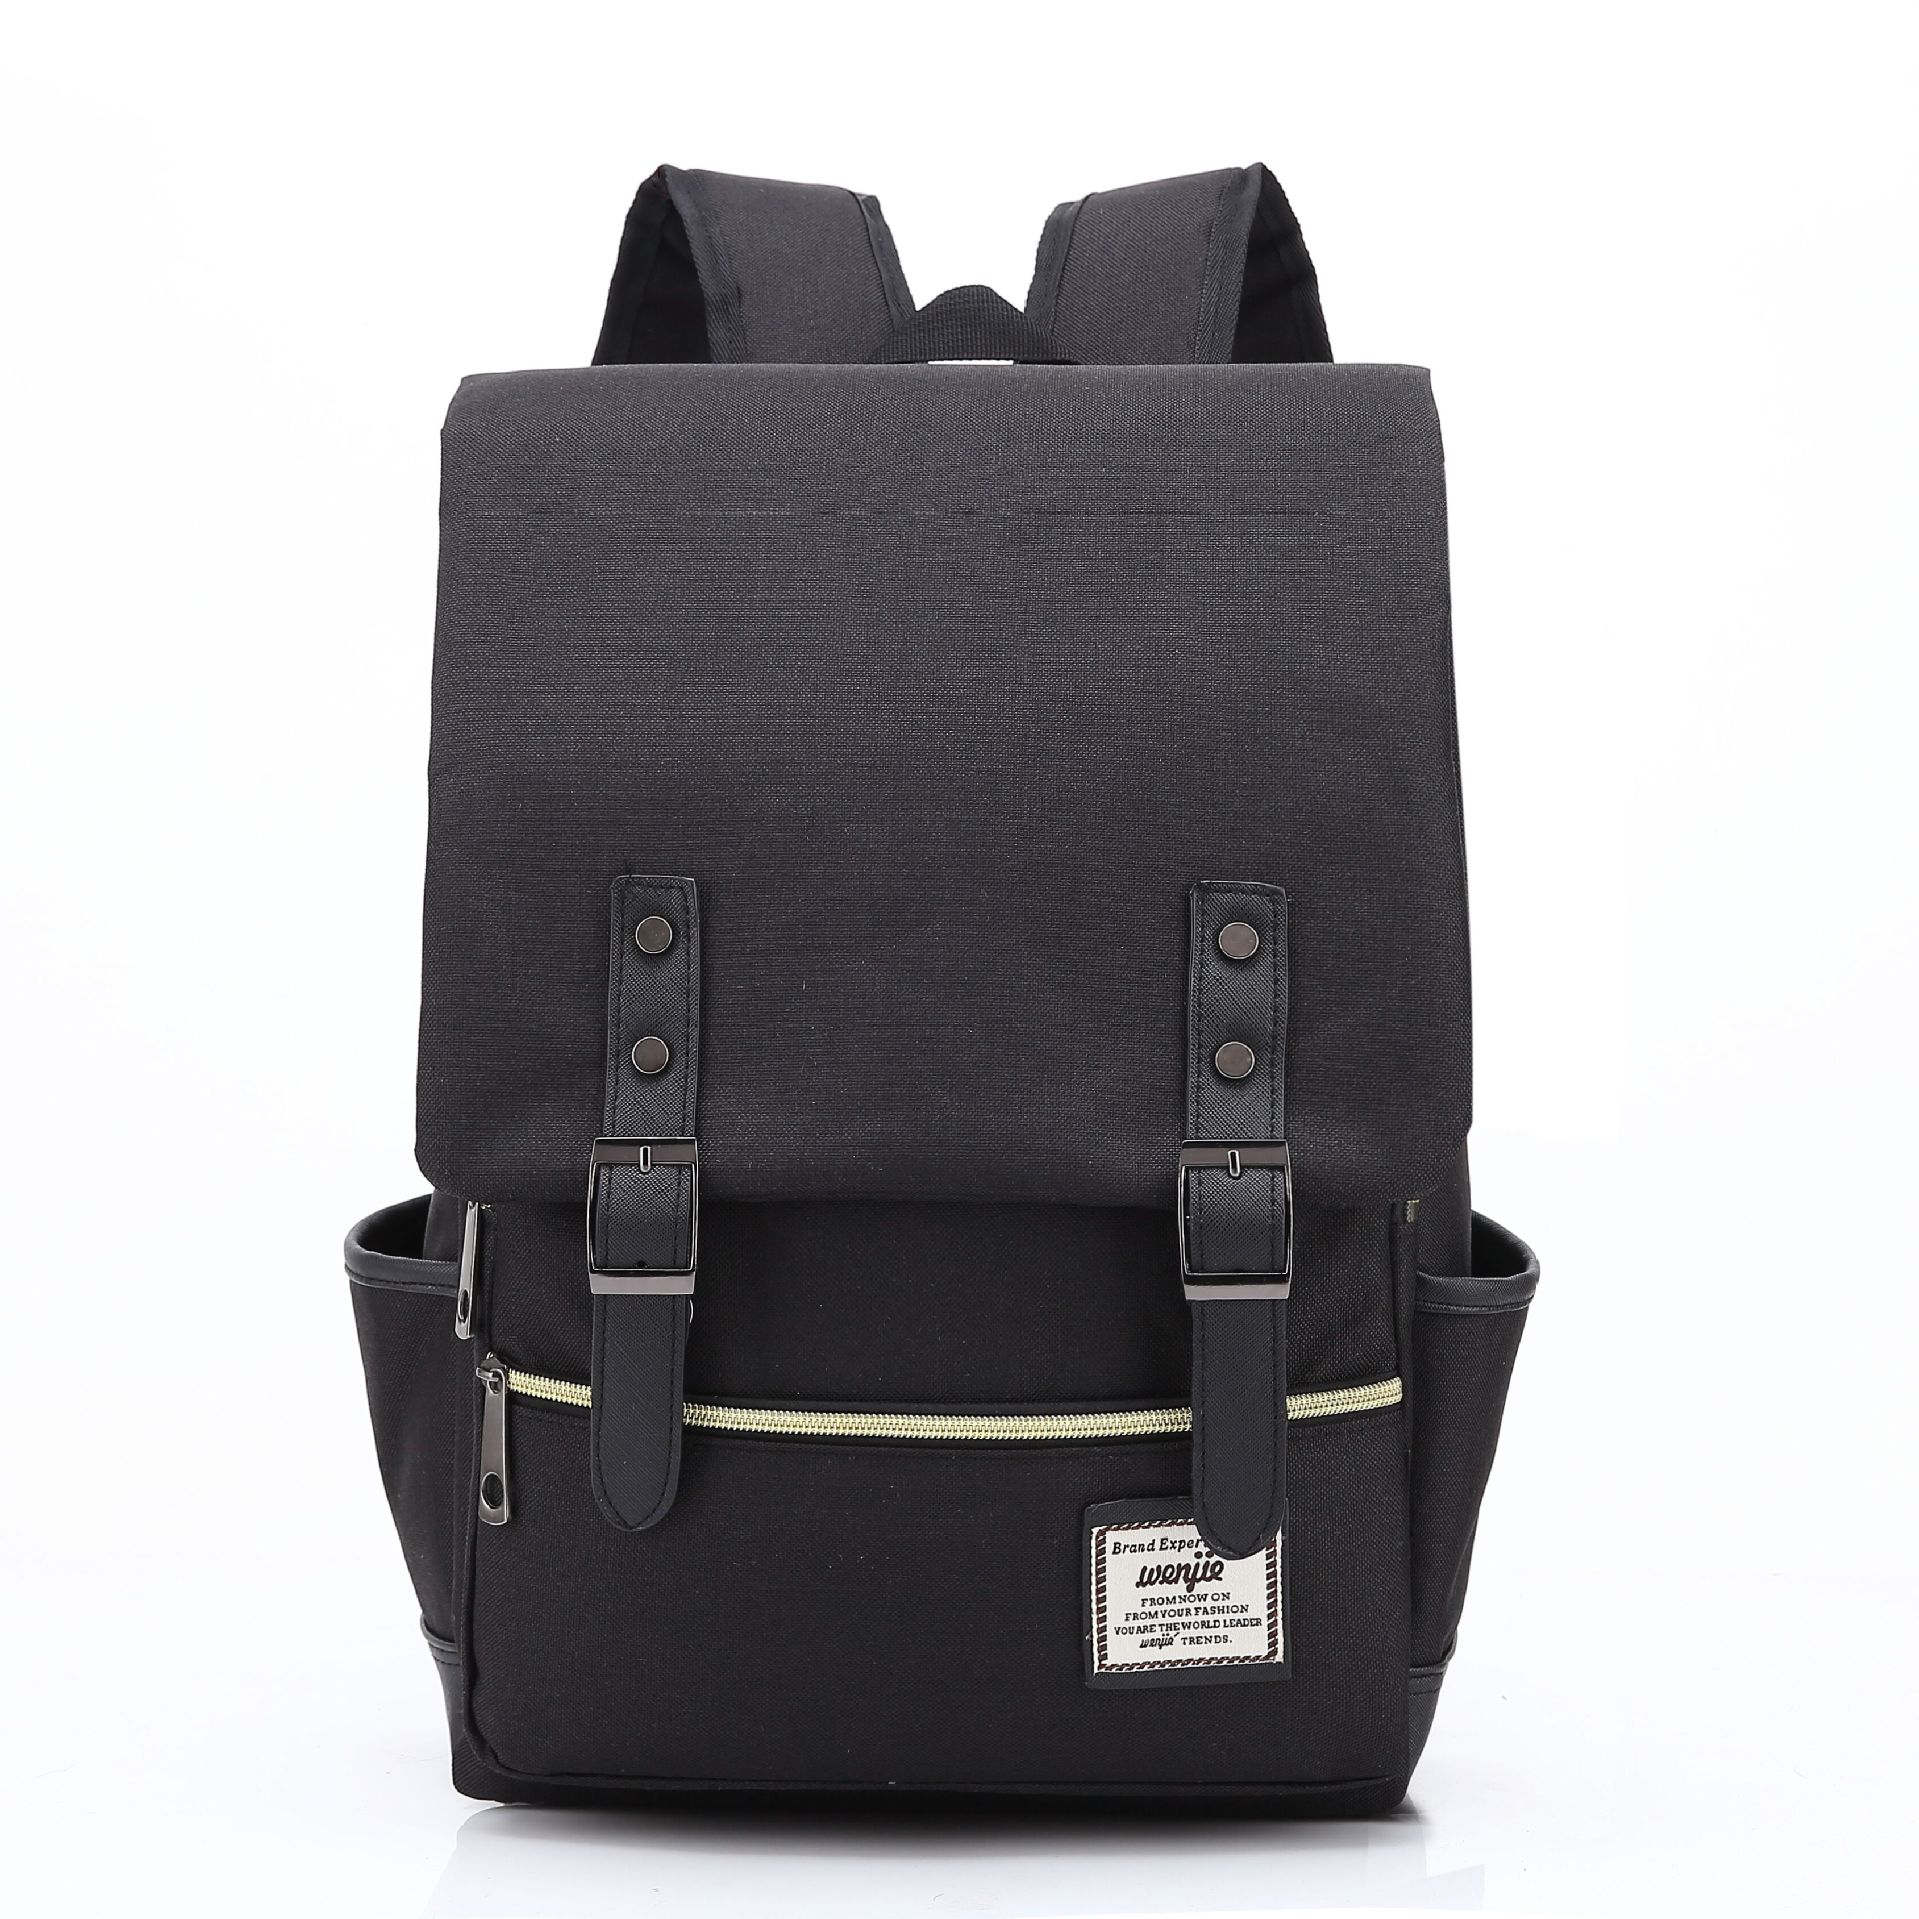 2017 Men's Canvas Backpack Women's Backpacks Backpack Style ,fashion Casual Canvas Backpack School Bags for Male,Travel Bag